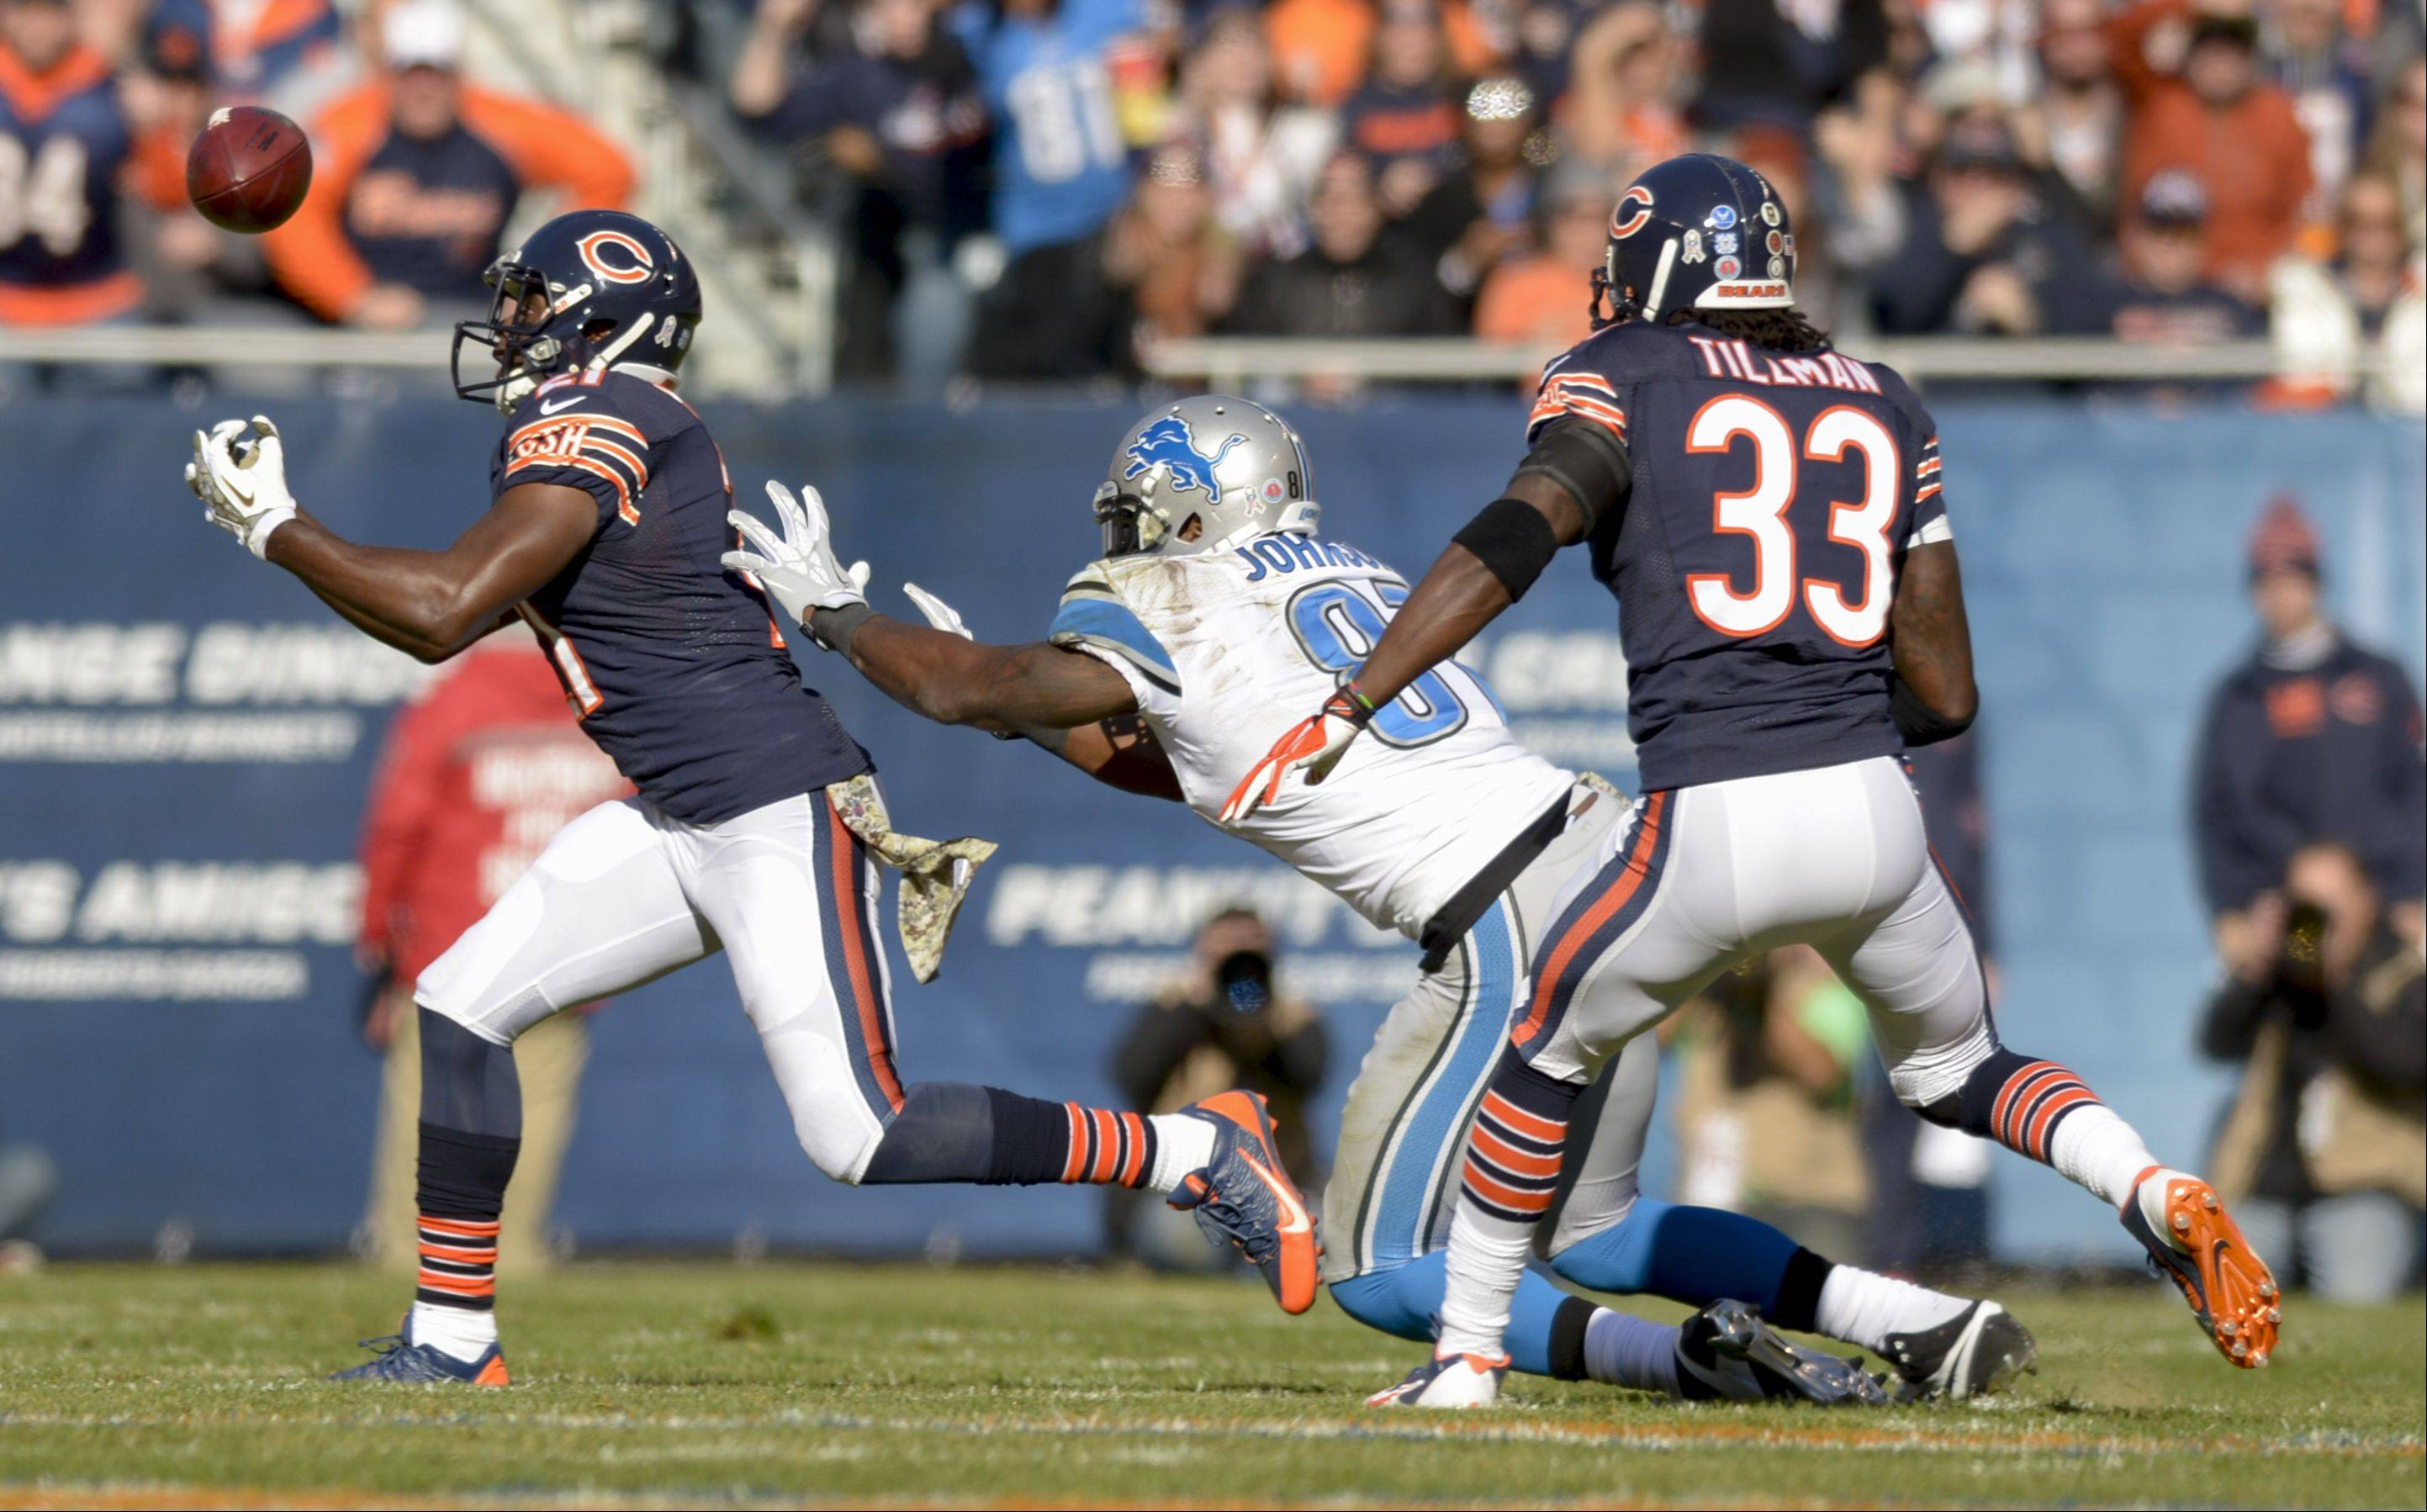 Chicago Bears strong safety Major Wright just can't get a hold of the ball during the Bears 21-19 loss to the Detroit Lions at Soldier Field, Sunday.